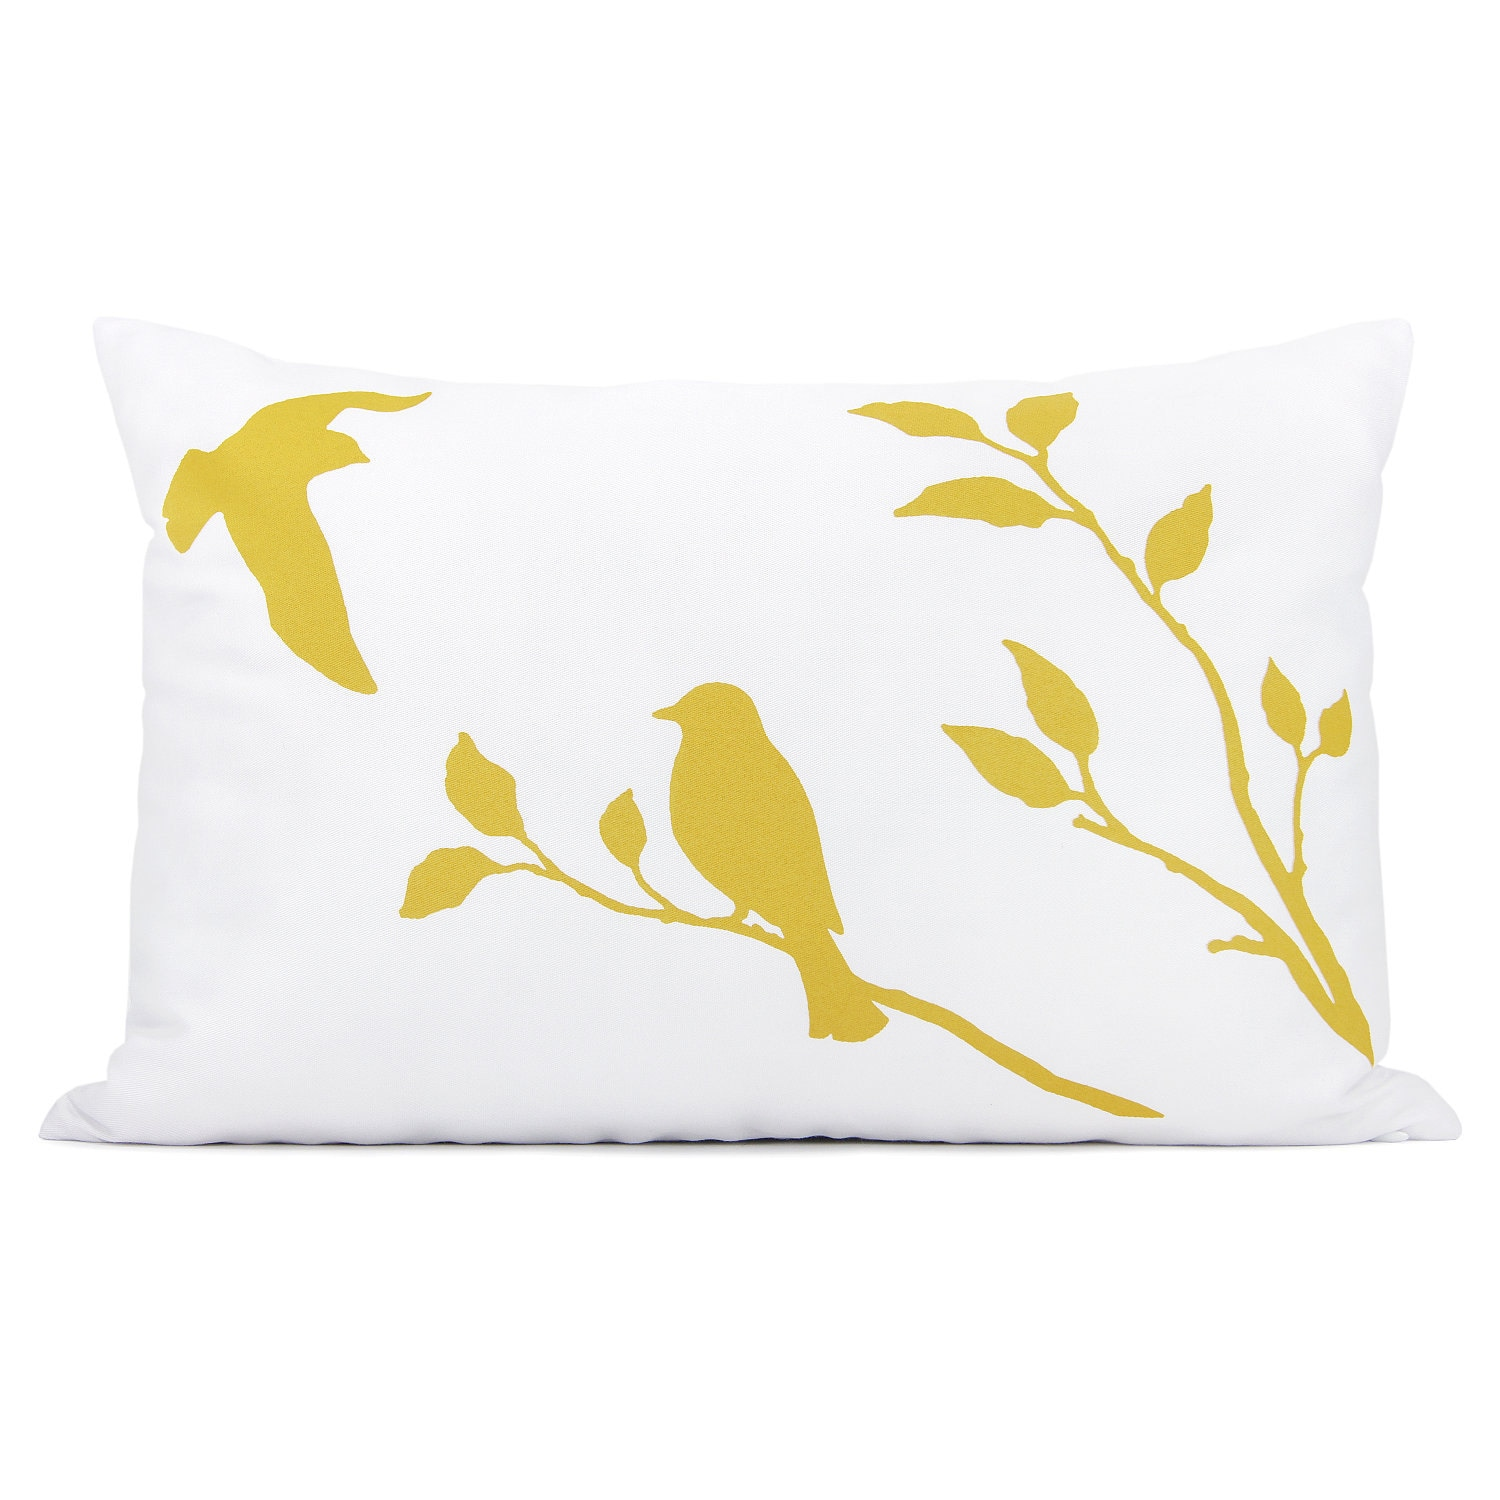 Love birds pillow cover - Mustard yellow bird in nature print on white fabric decorative pillow cover - 12x18 lumbar pillow cover - ClassicByNature